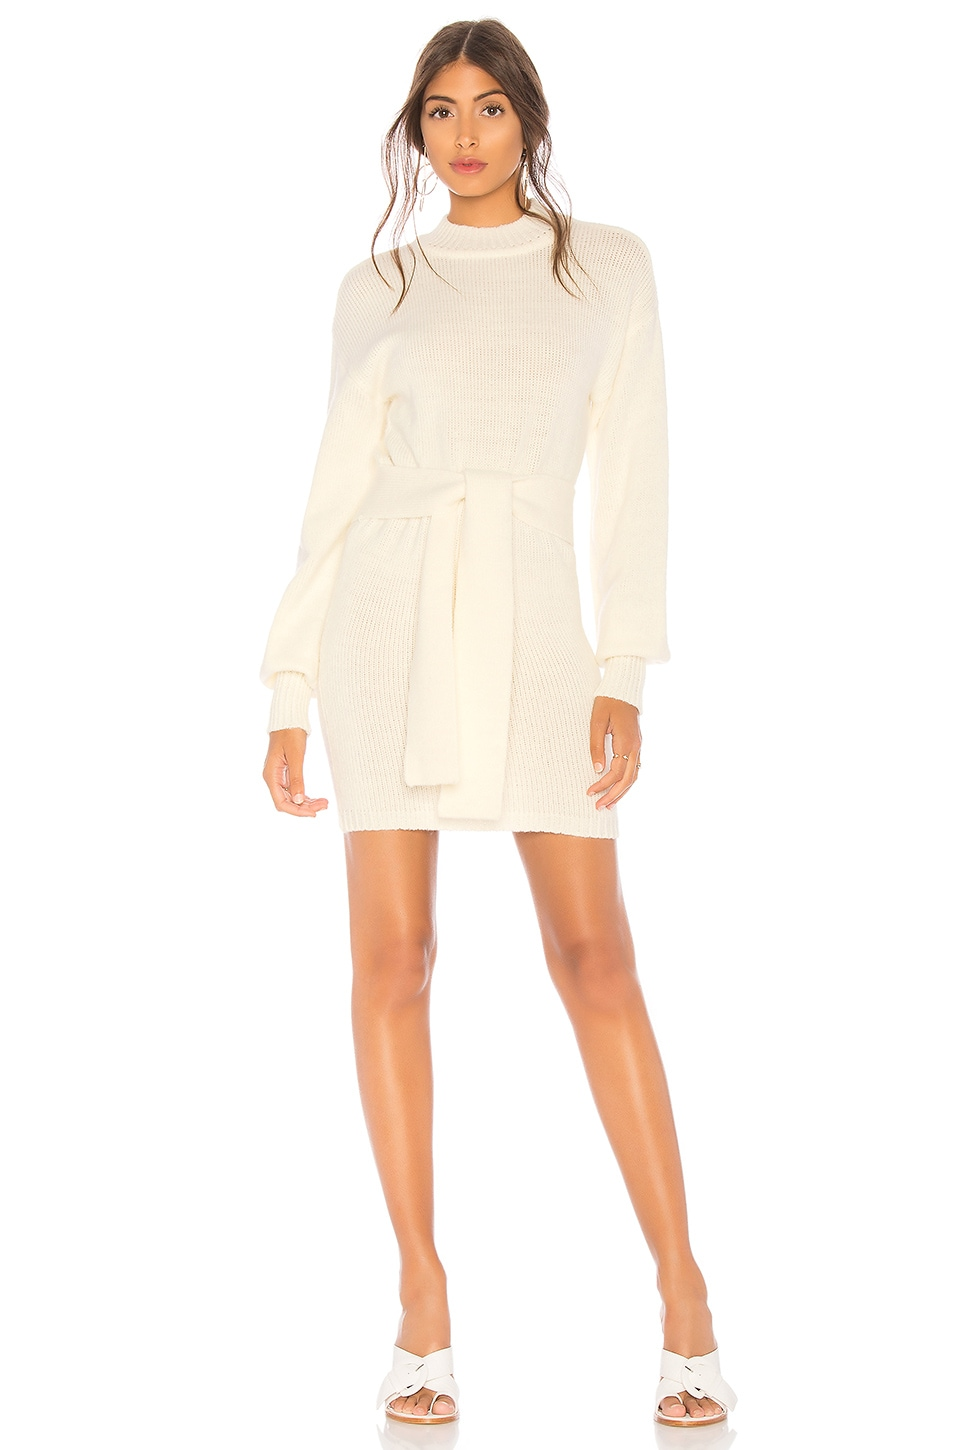 Lovers + Friends Tie Up Sweater Dress in Ivory